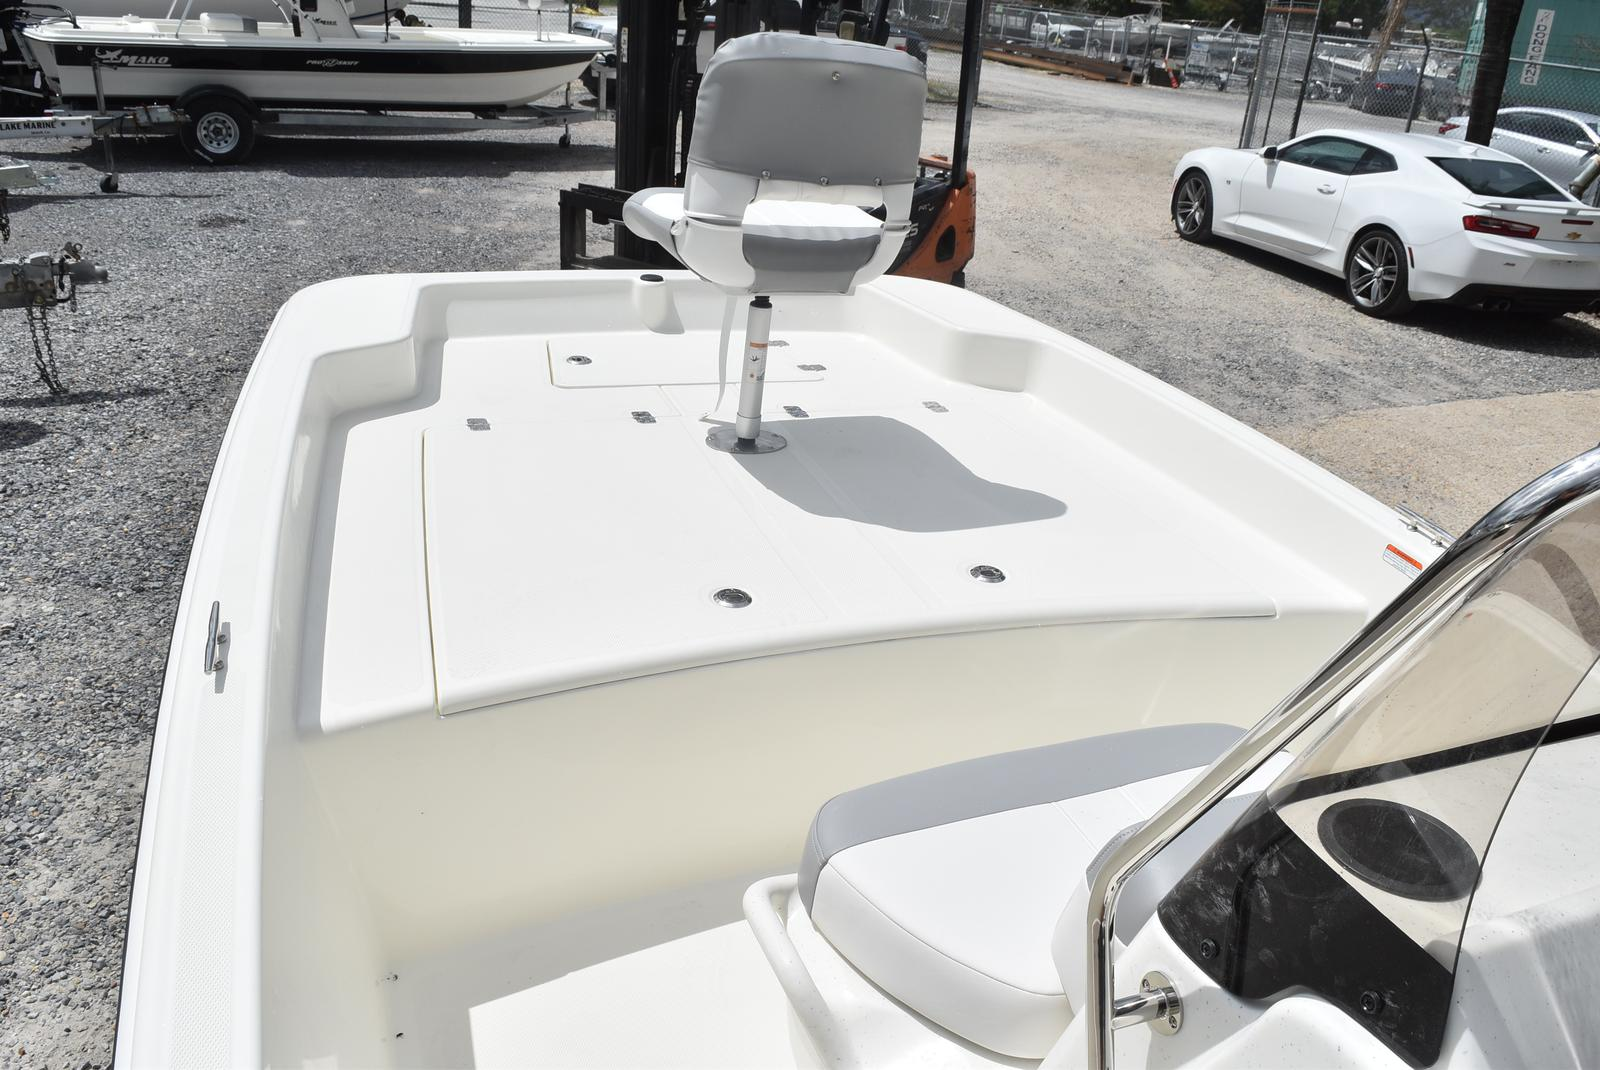 2020 Mako boat for sale, model of the boat is Pro Skiff 17, 75 ELPT & Image # 440 of 702